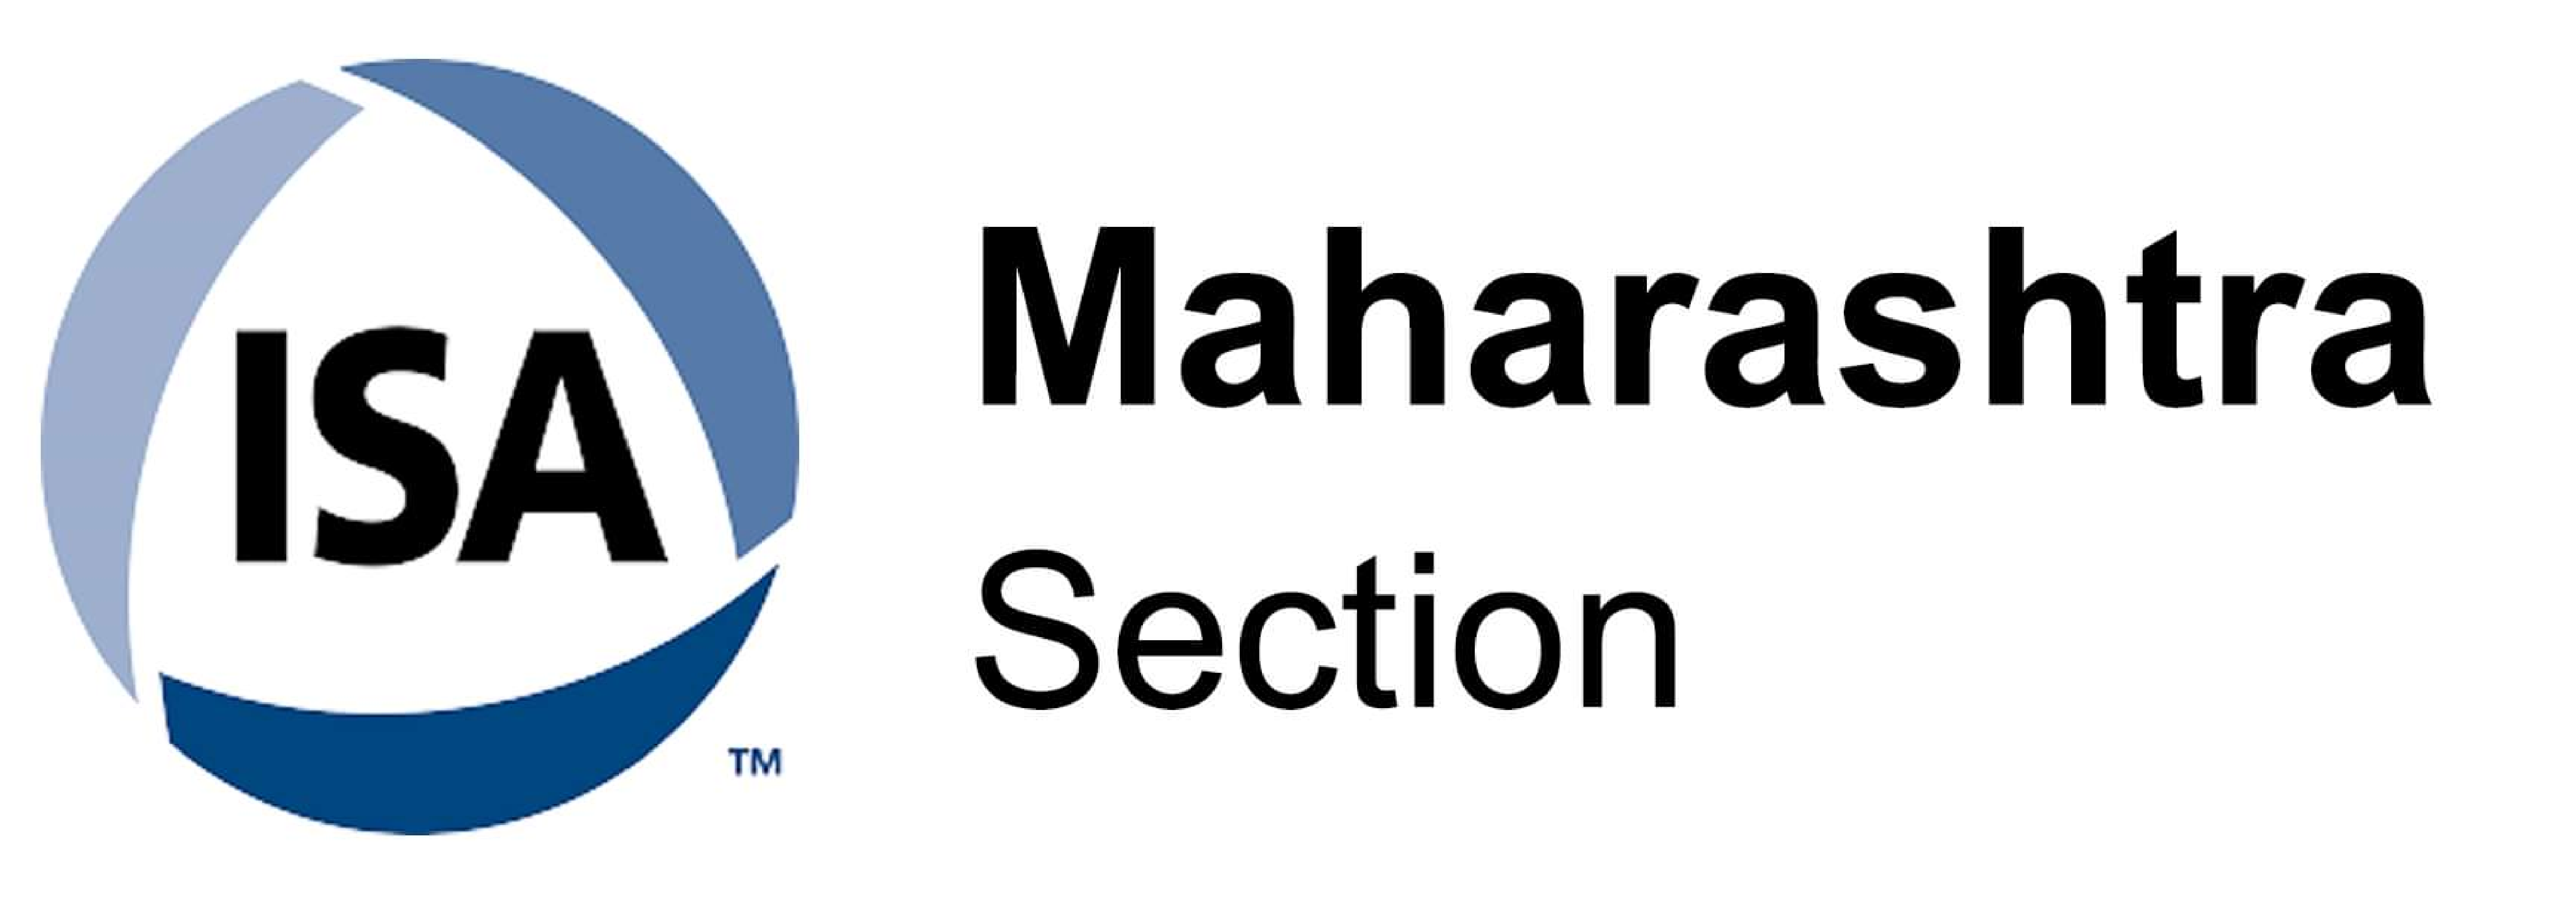 ISA MAHARASHTRA SECTION